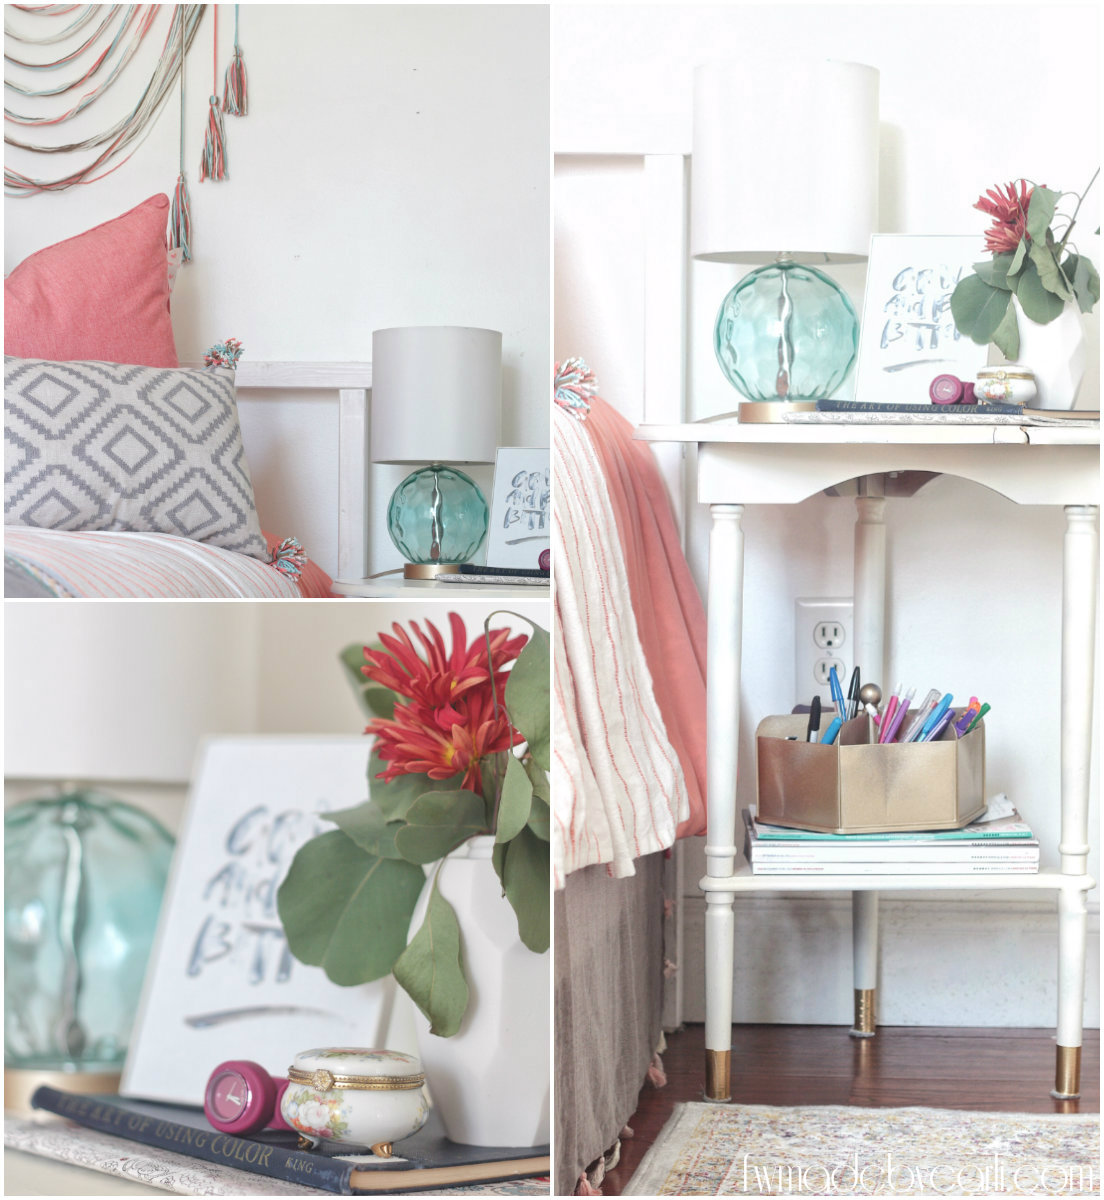 Before And After Merging Two Rooms Has Created A Super: My Daughter's Room: Pre-Teen Bedroom Refresh Reveal